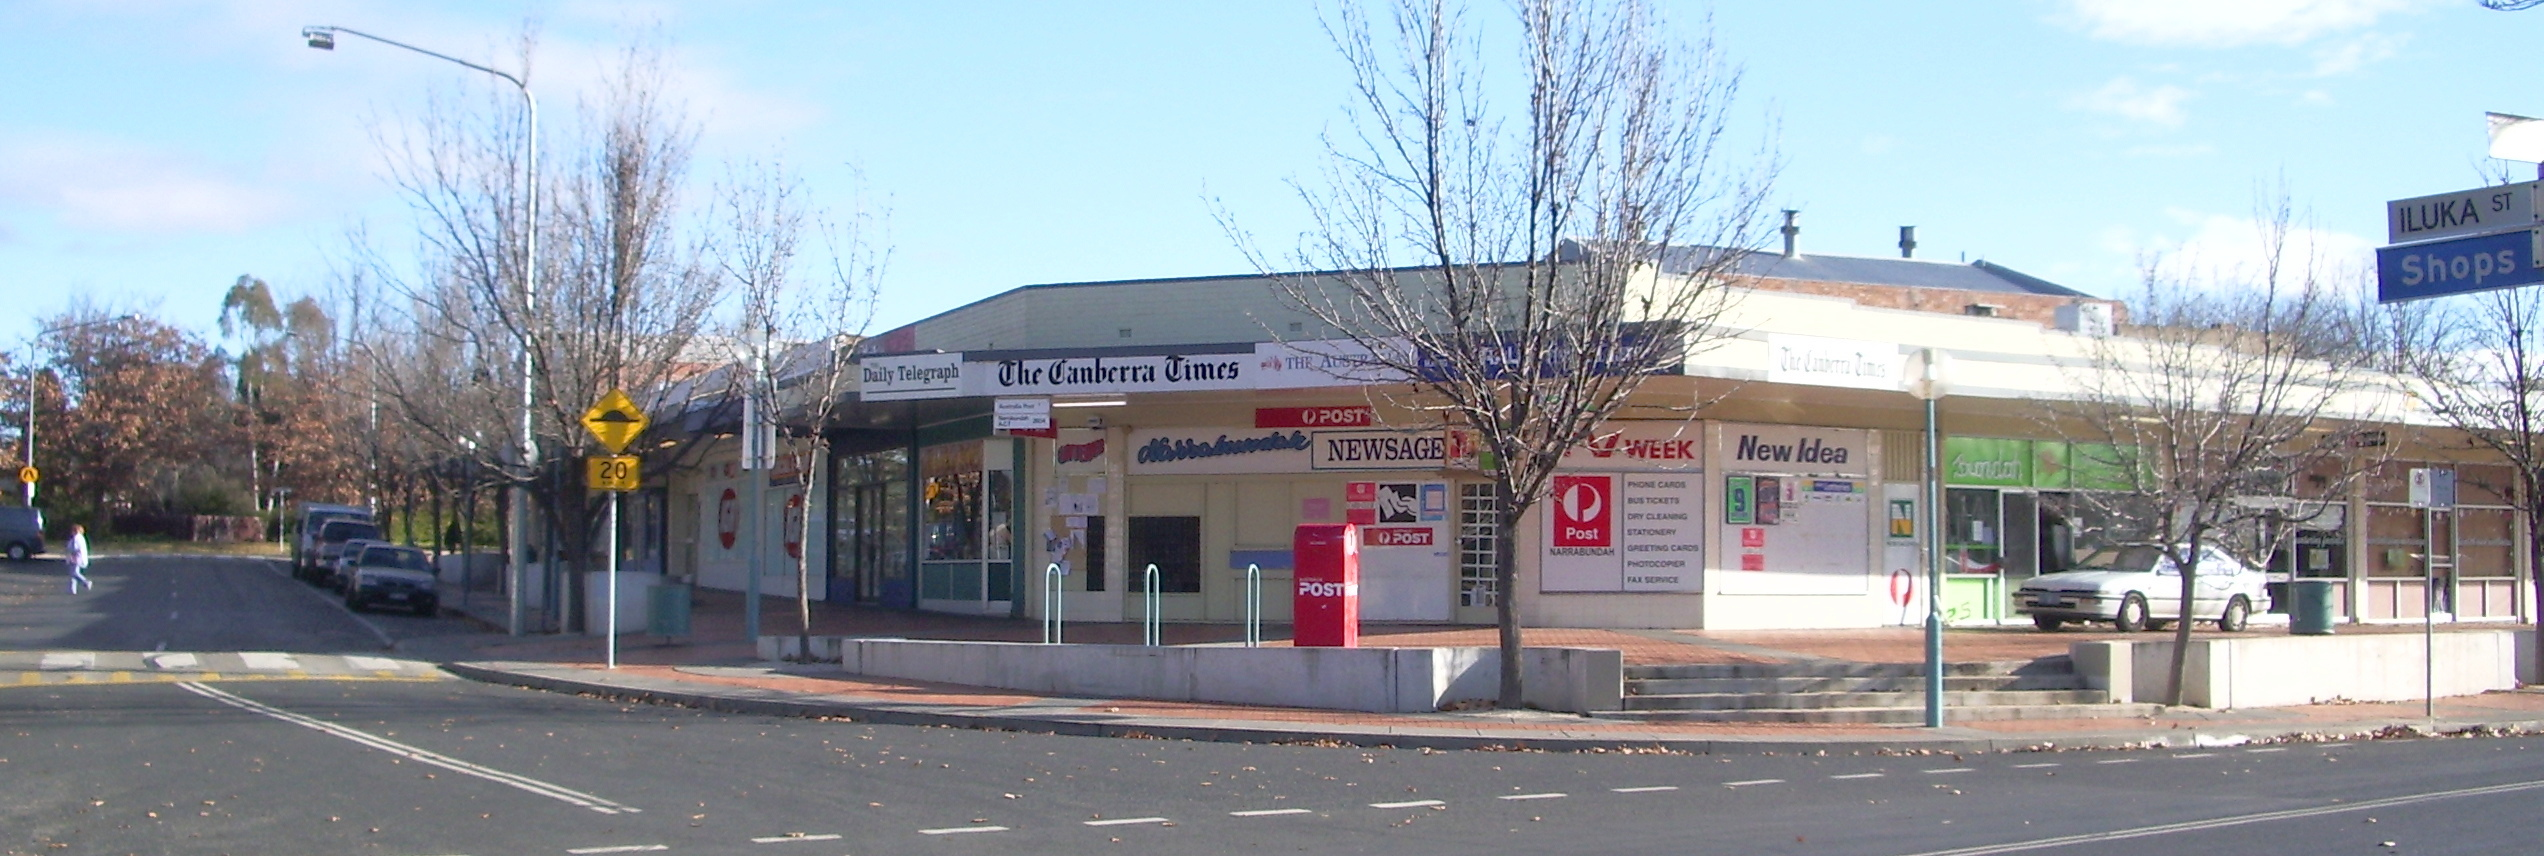 Narrabundah_Shops_from_cnr_Kootara_Crescent_and_Iluka_Street,_Winter_2008